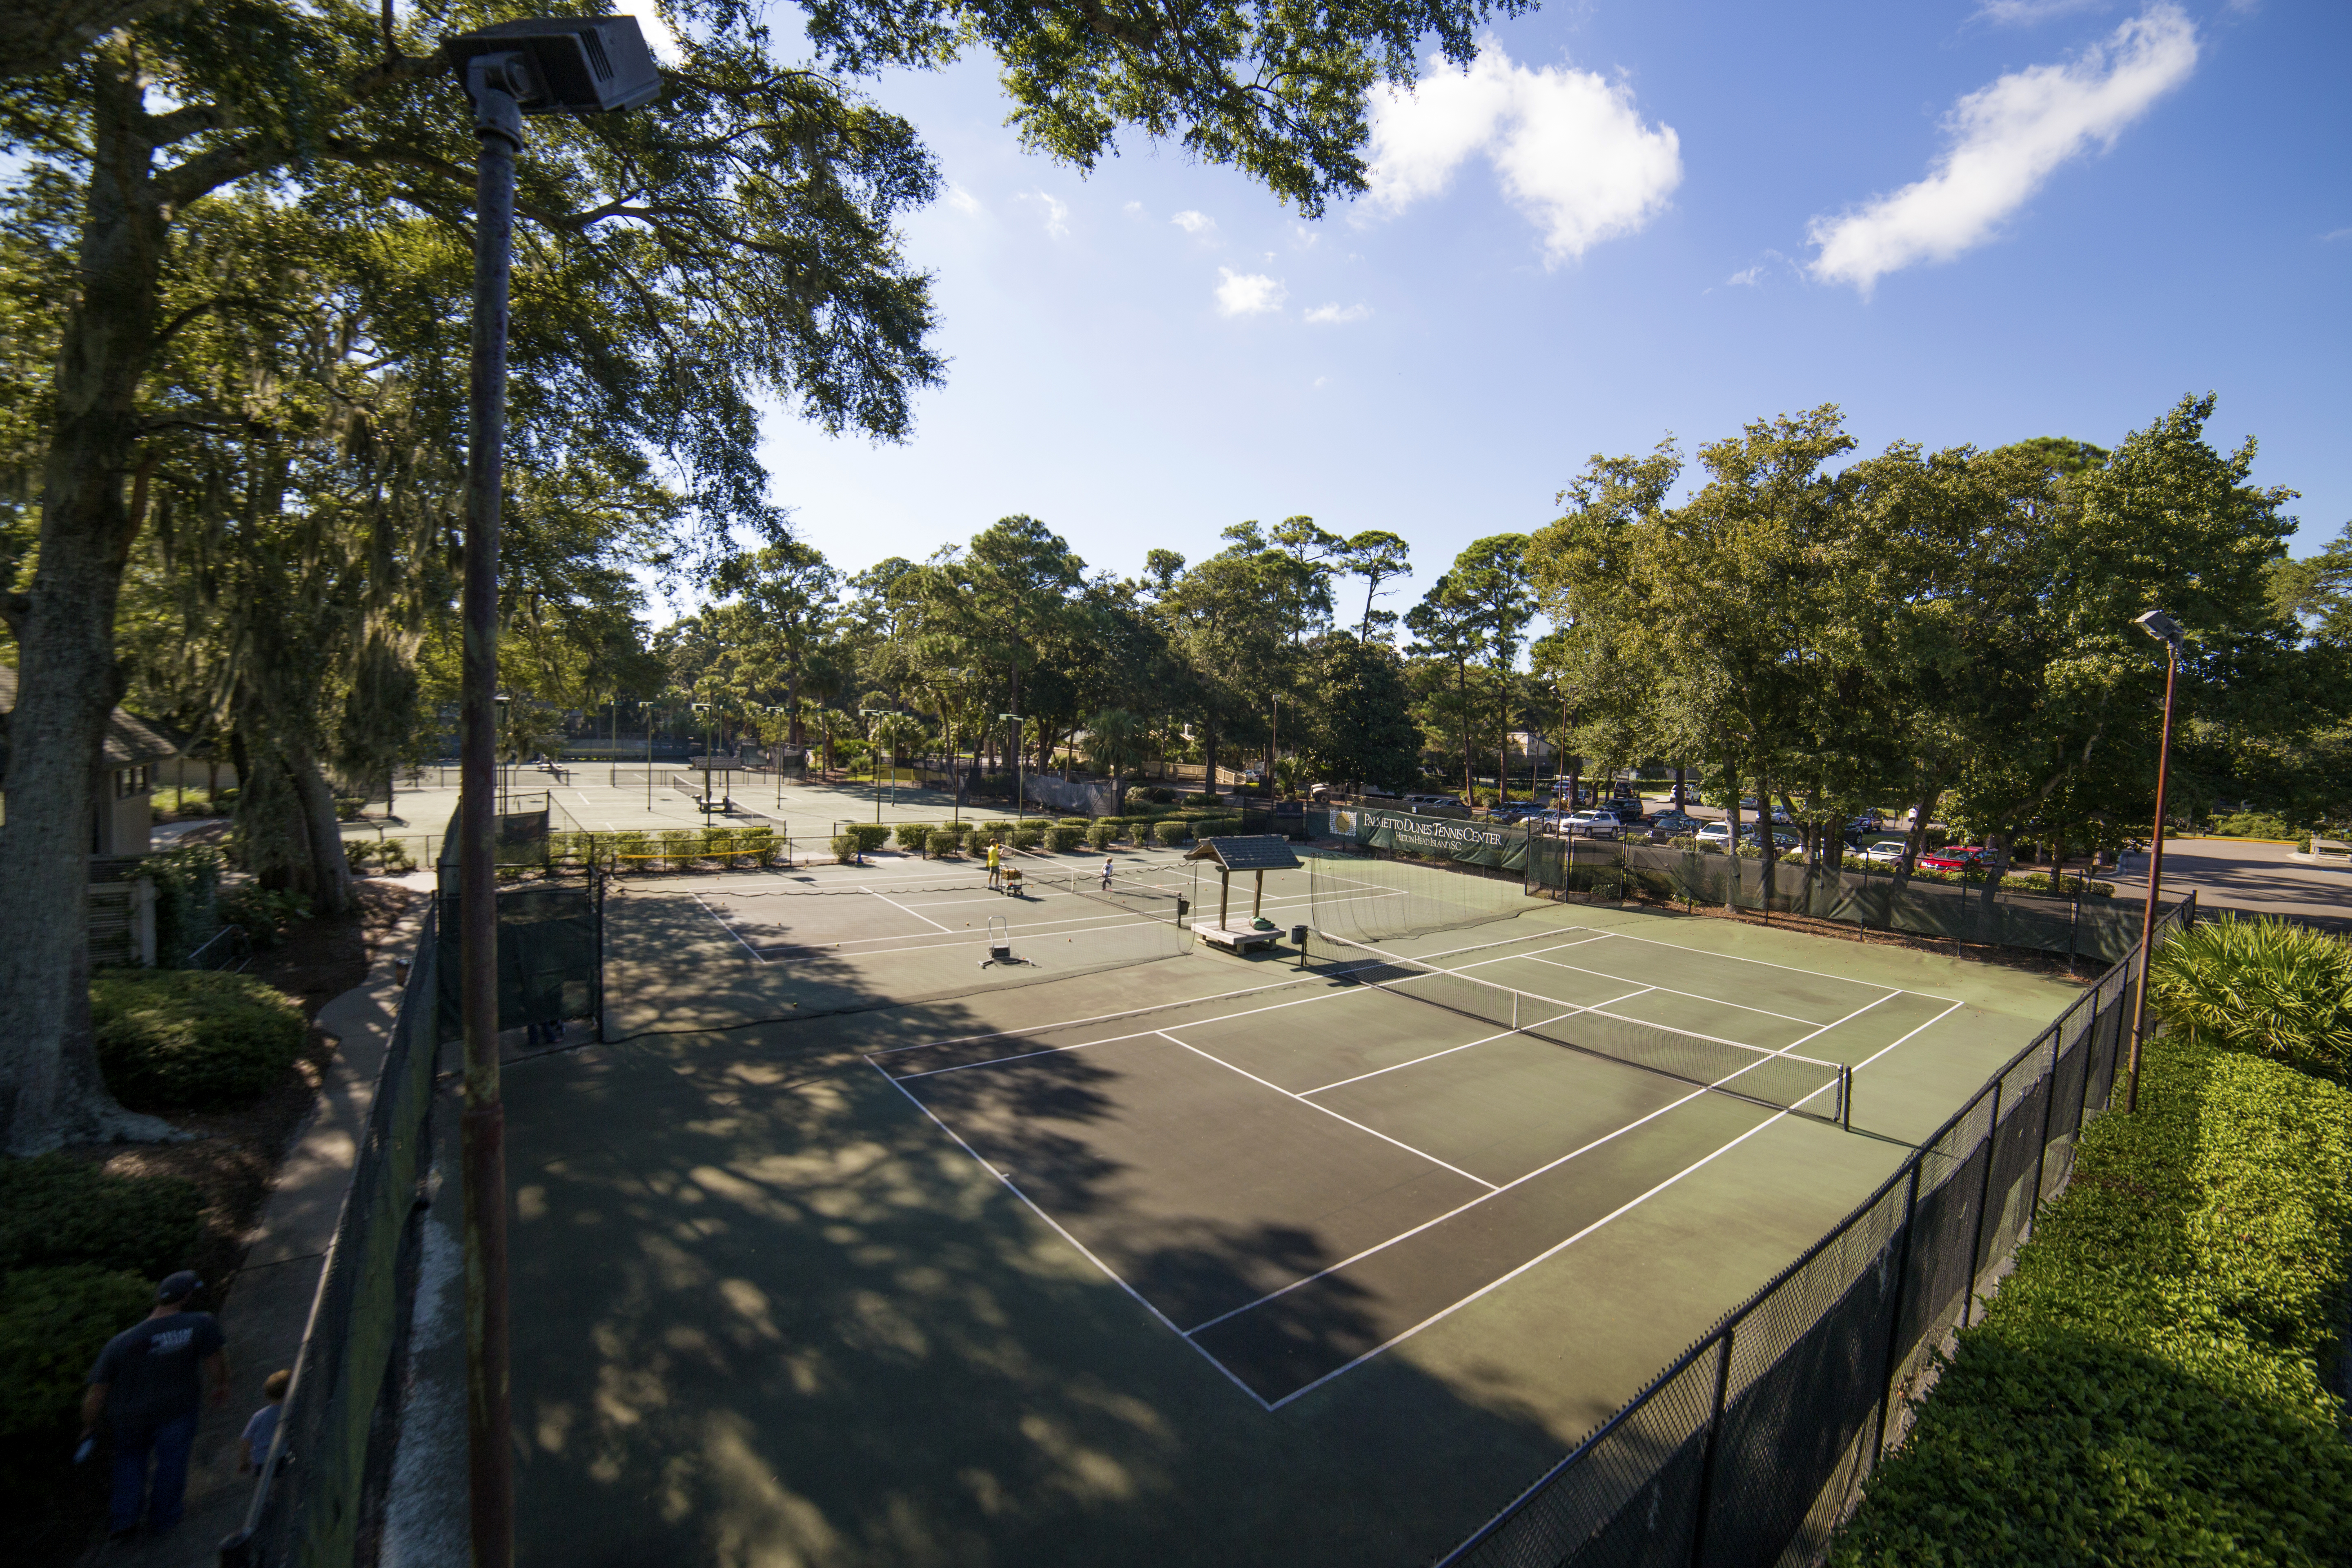 Palmetto Dunes Tennis & Pickleball Center reviews | Tennis at 6 Trent Jones Ln - Hilton Head Island SC